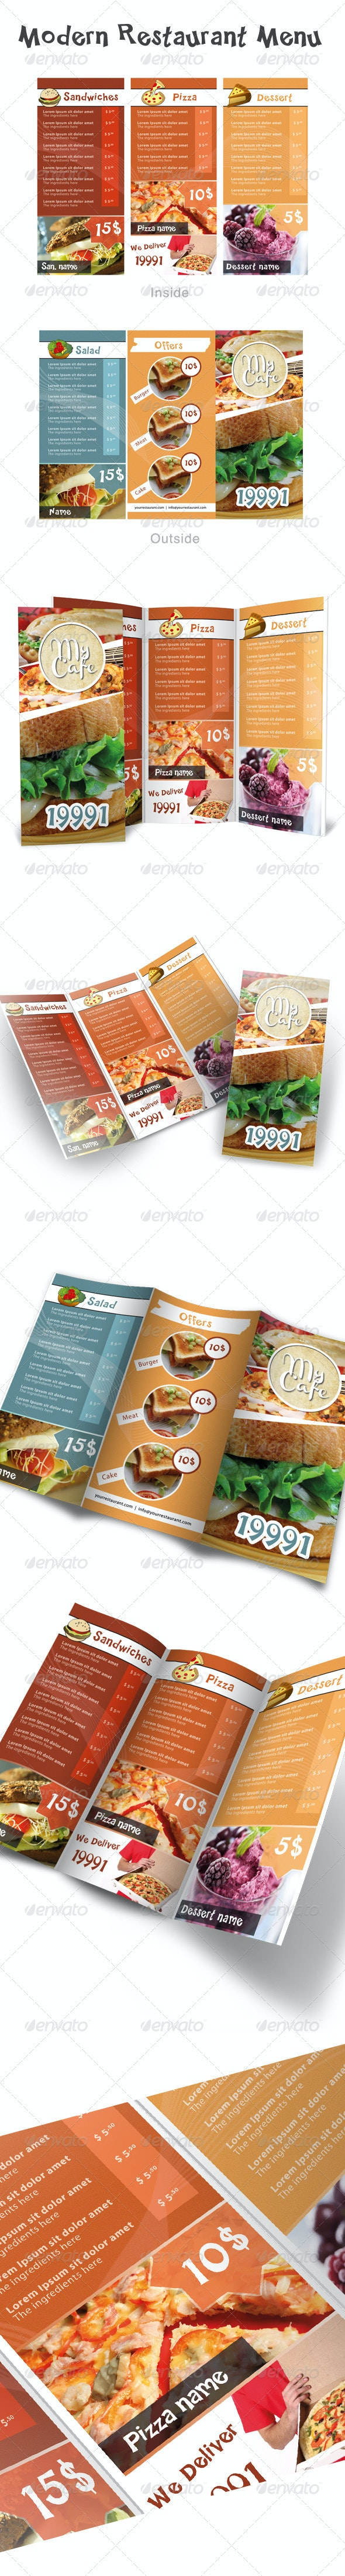 Modern Restaurant Menu - Food Menus Print Templates